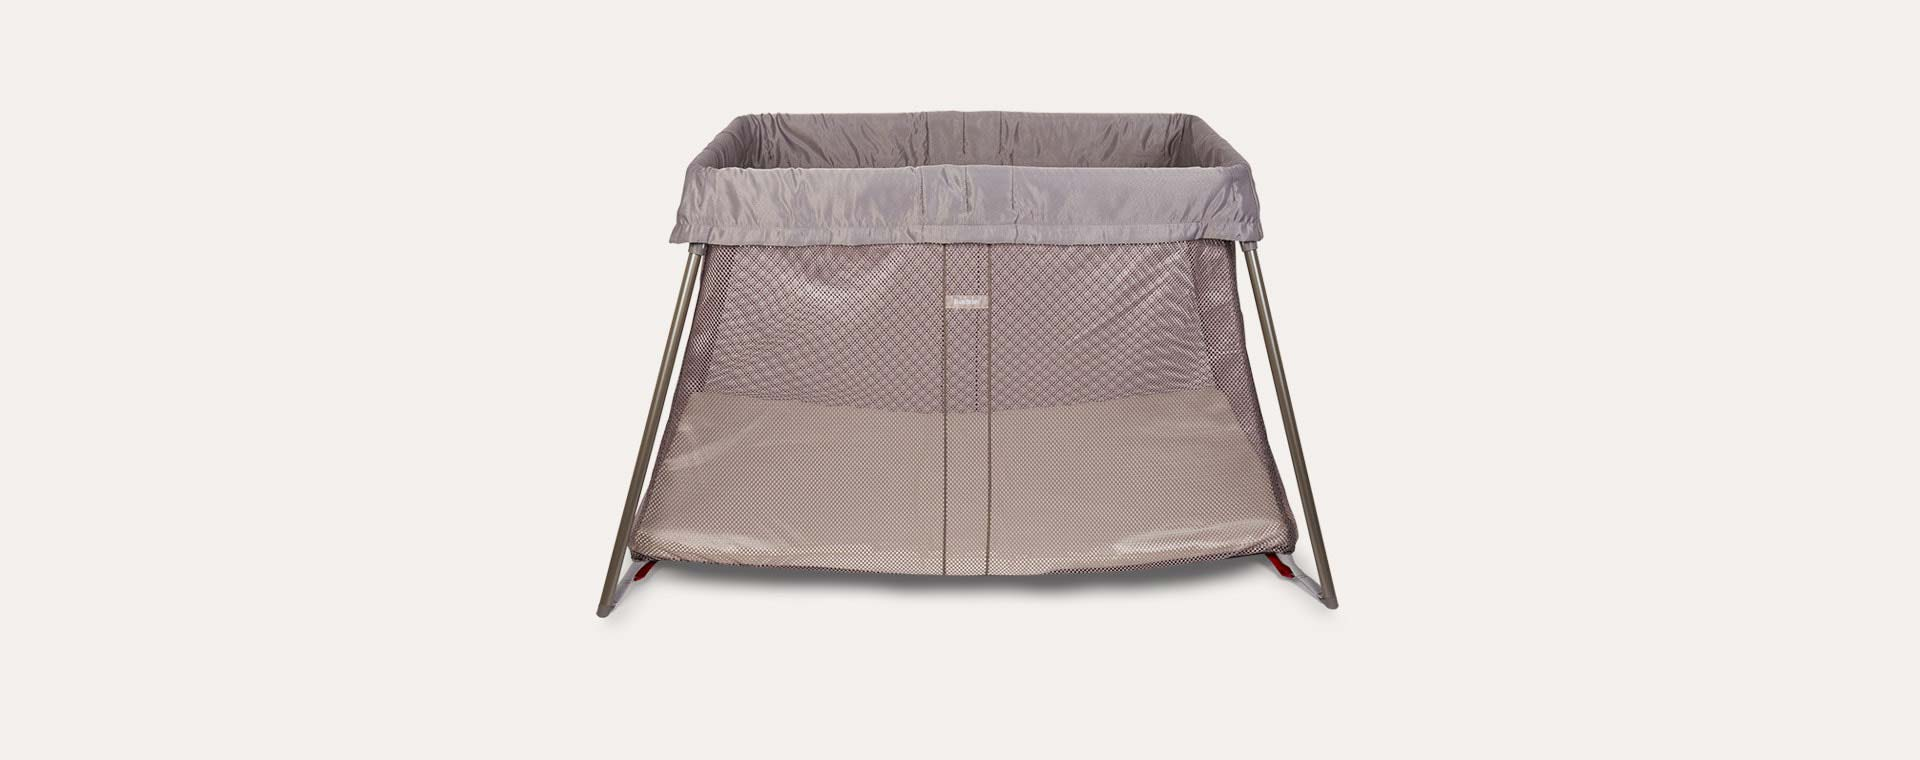 Greige BabyBjorn Travel Cot Easy Go